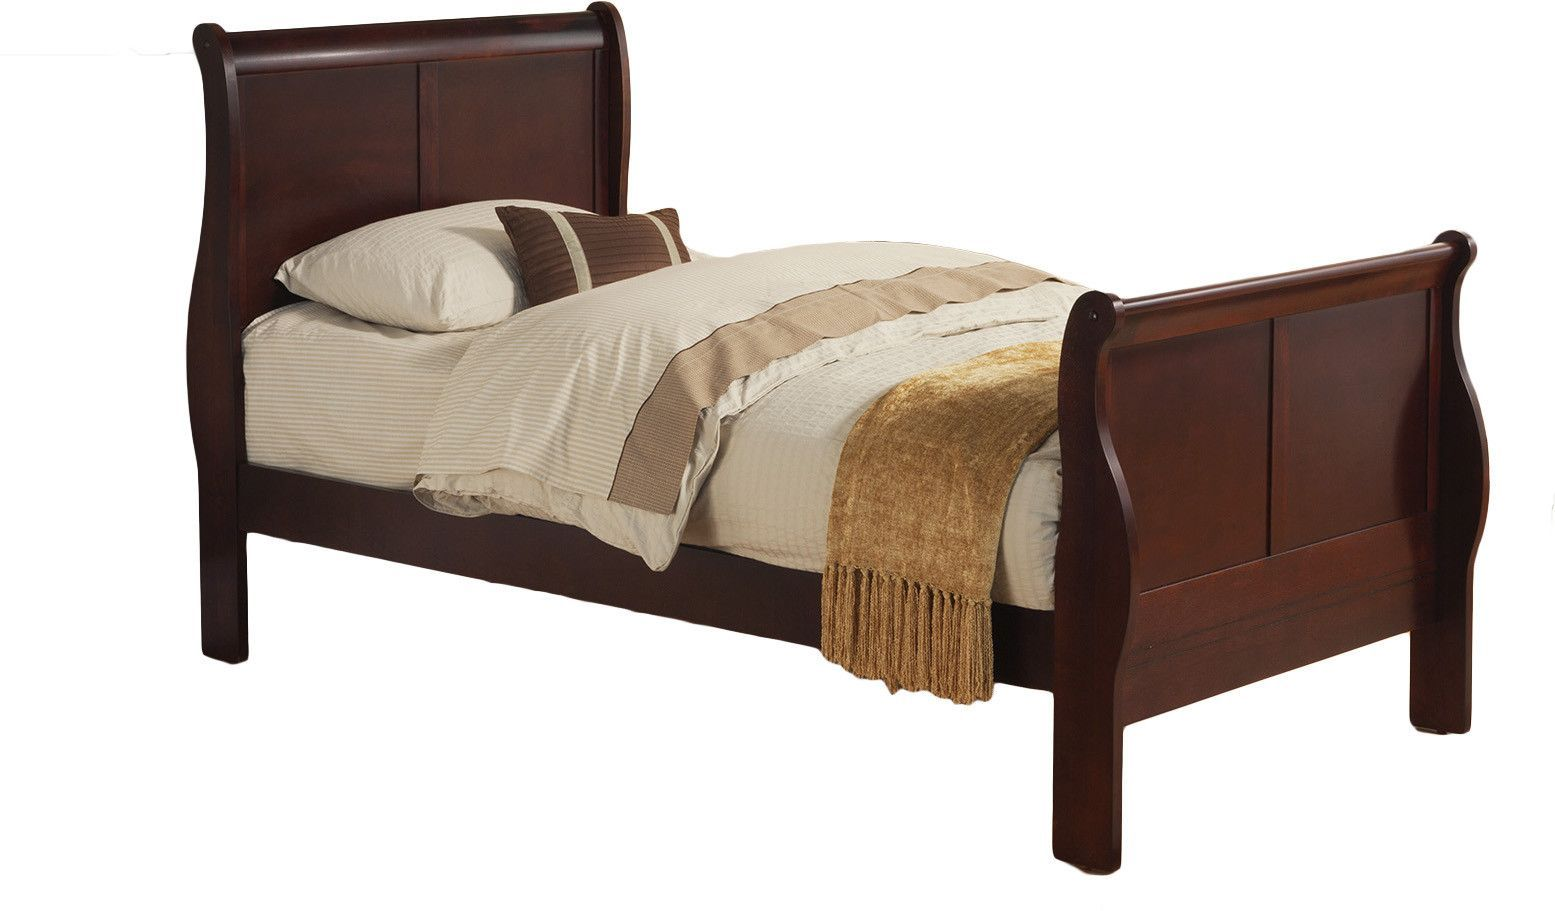 Louis Philippe Ii Twin Sleigh Bed Twin Sleigh Bed Wood Sleigh Bed Sleigh Beds